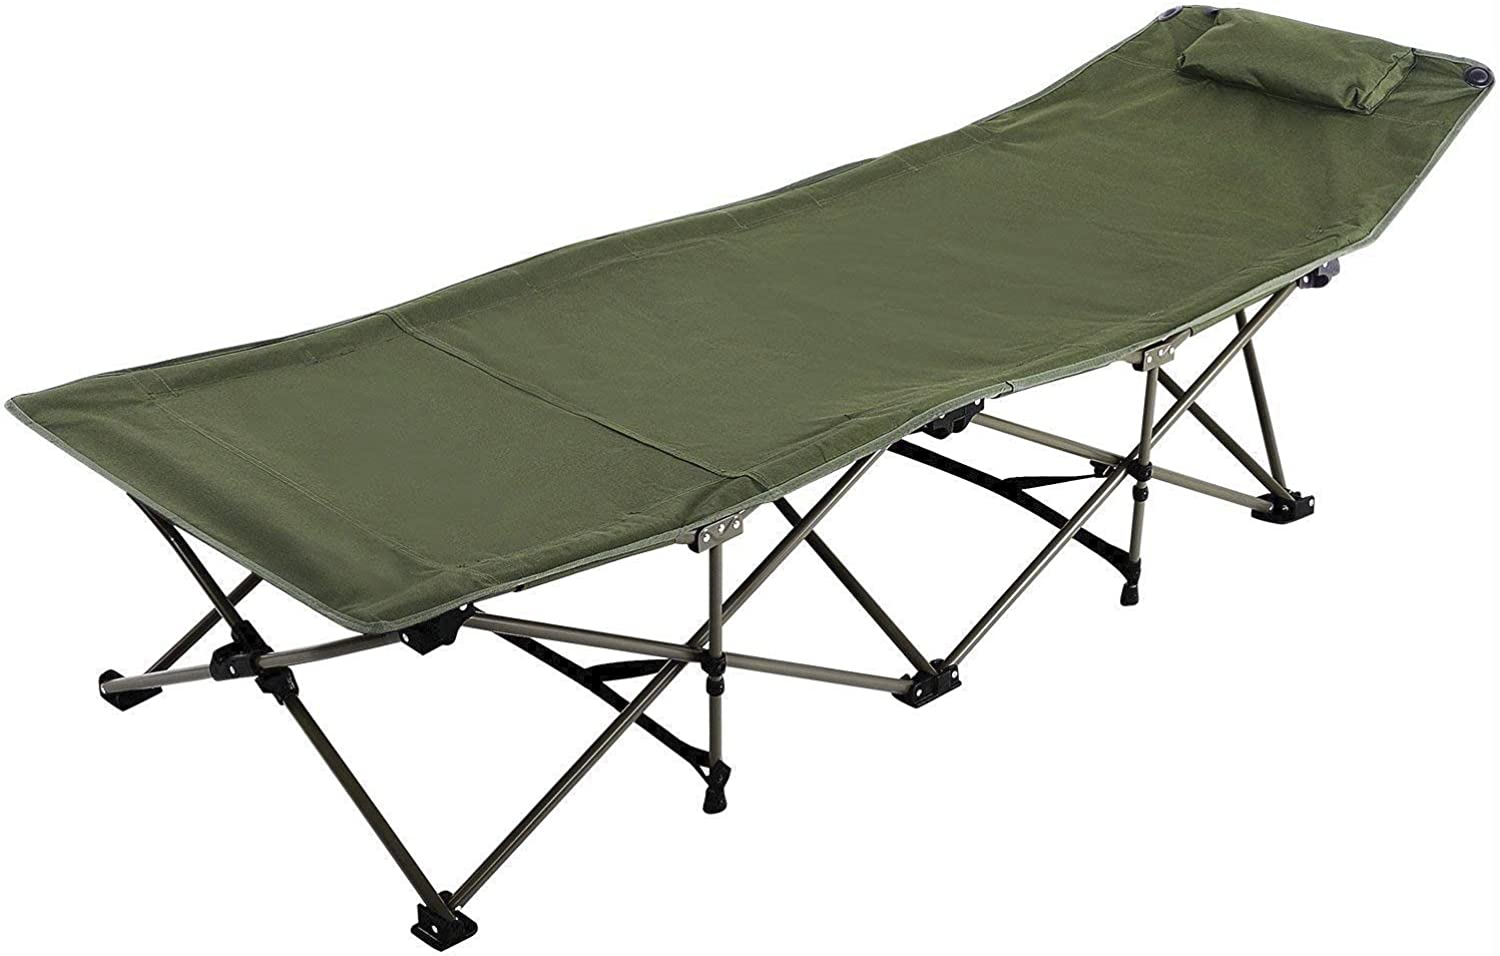 REDCAMP Camping Cot for Adults with Attached Pillow Easy & Portable Cot Free Storage Bag Included